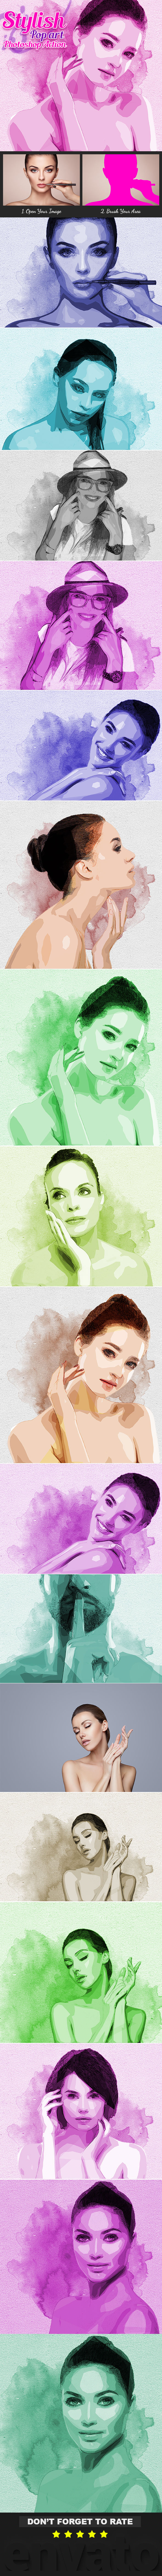 Stylish Pop Art Photoshop Action - Photo Effects Actions